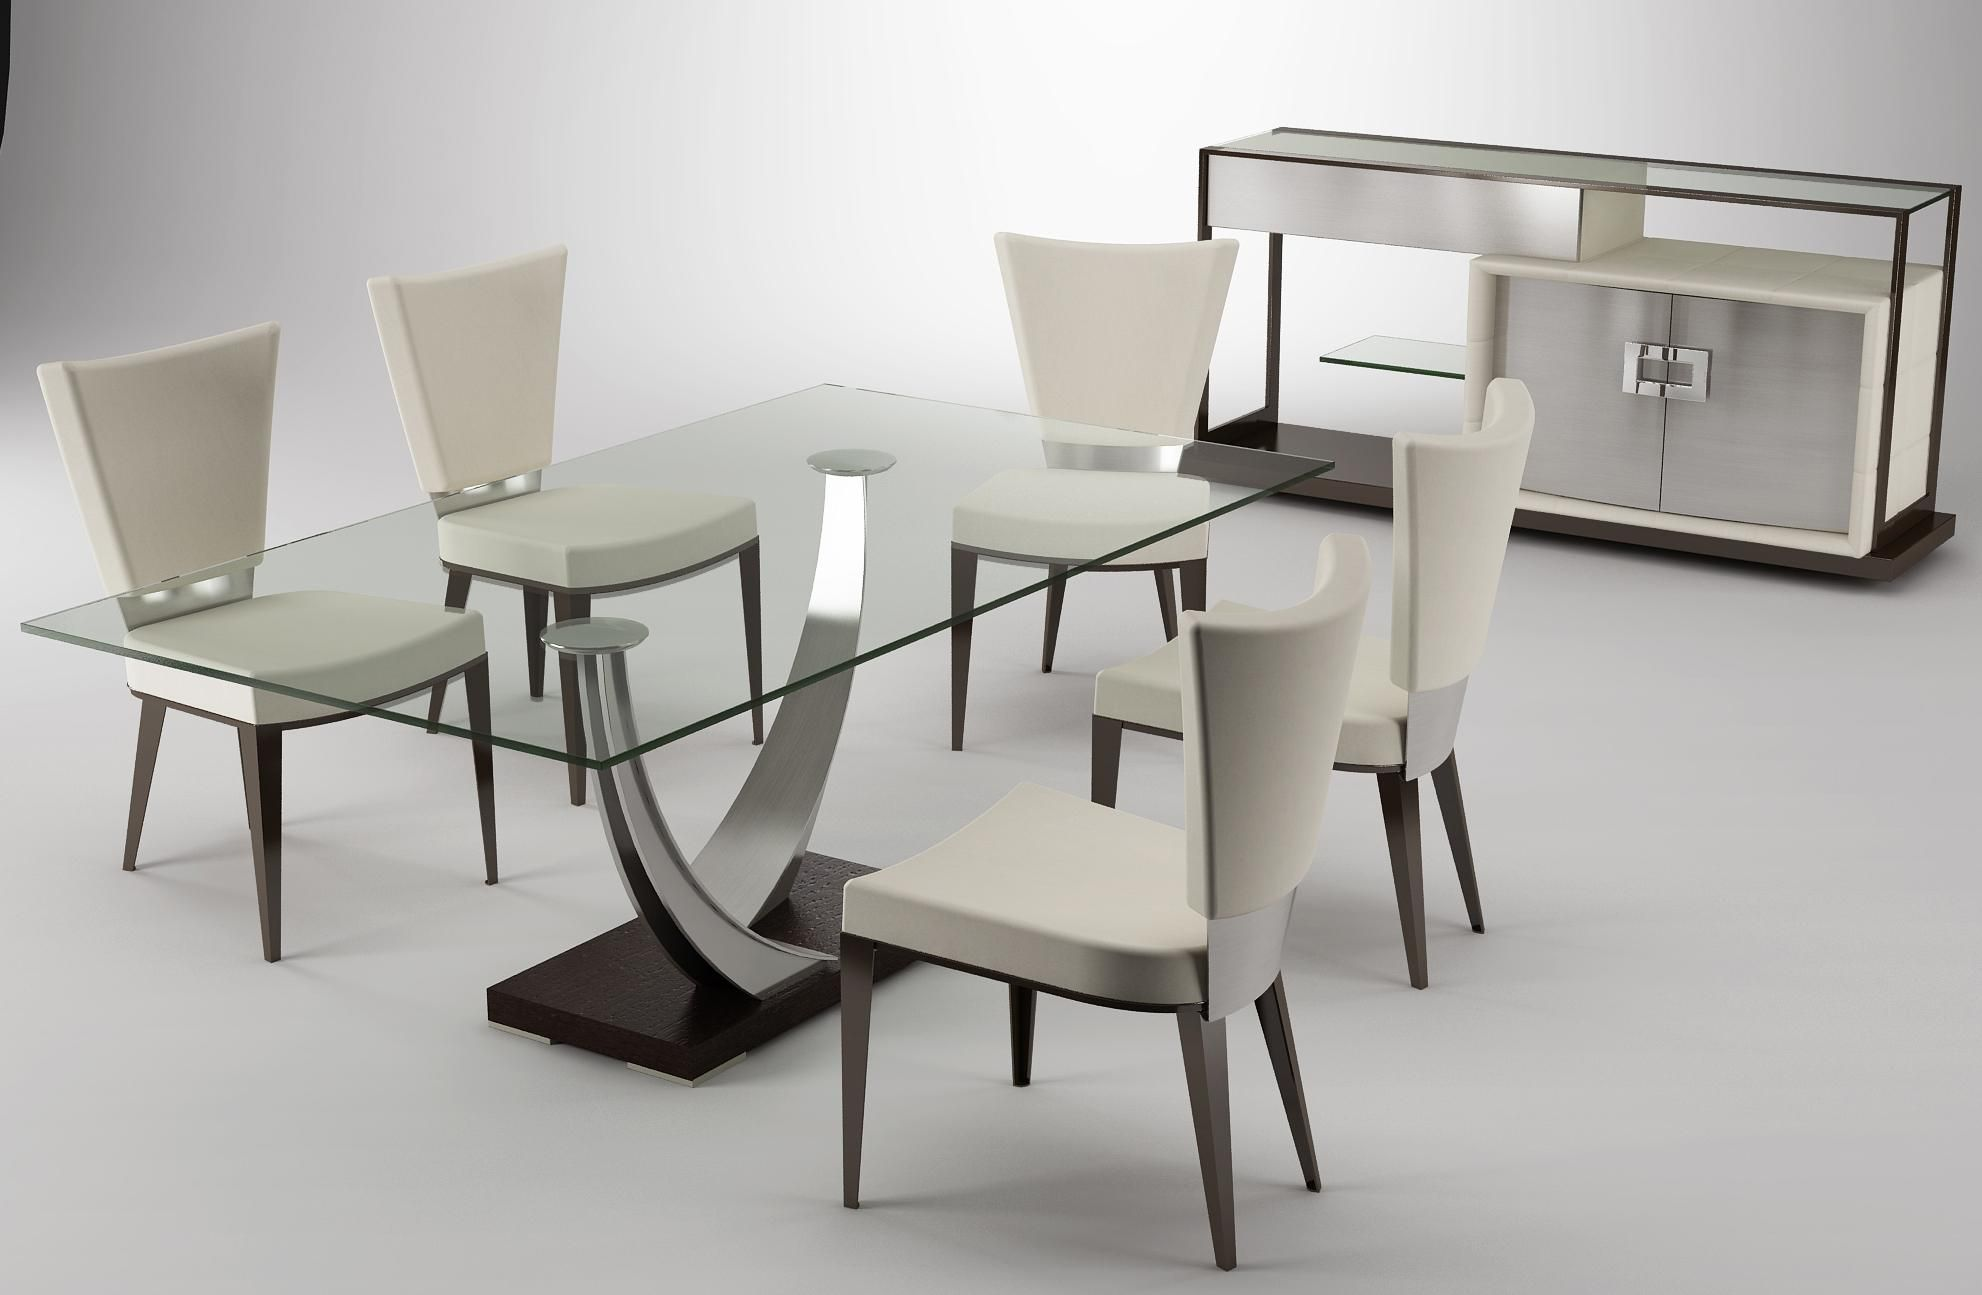 Amazing modern stylish dining room table set designs elite tangent glass top furniture stores - Contemporary dining room sets furniture ...